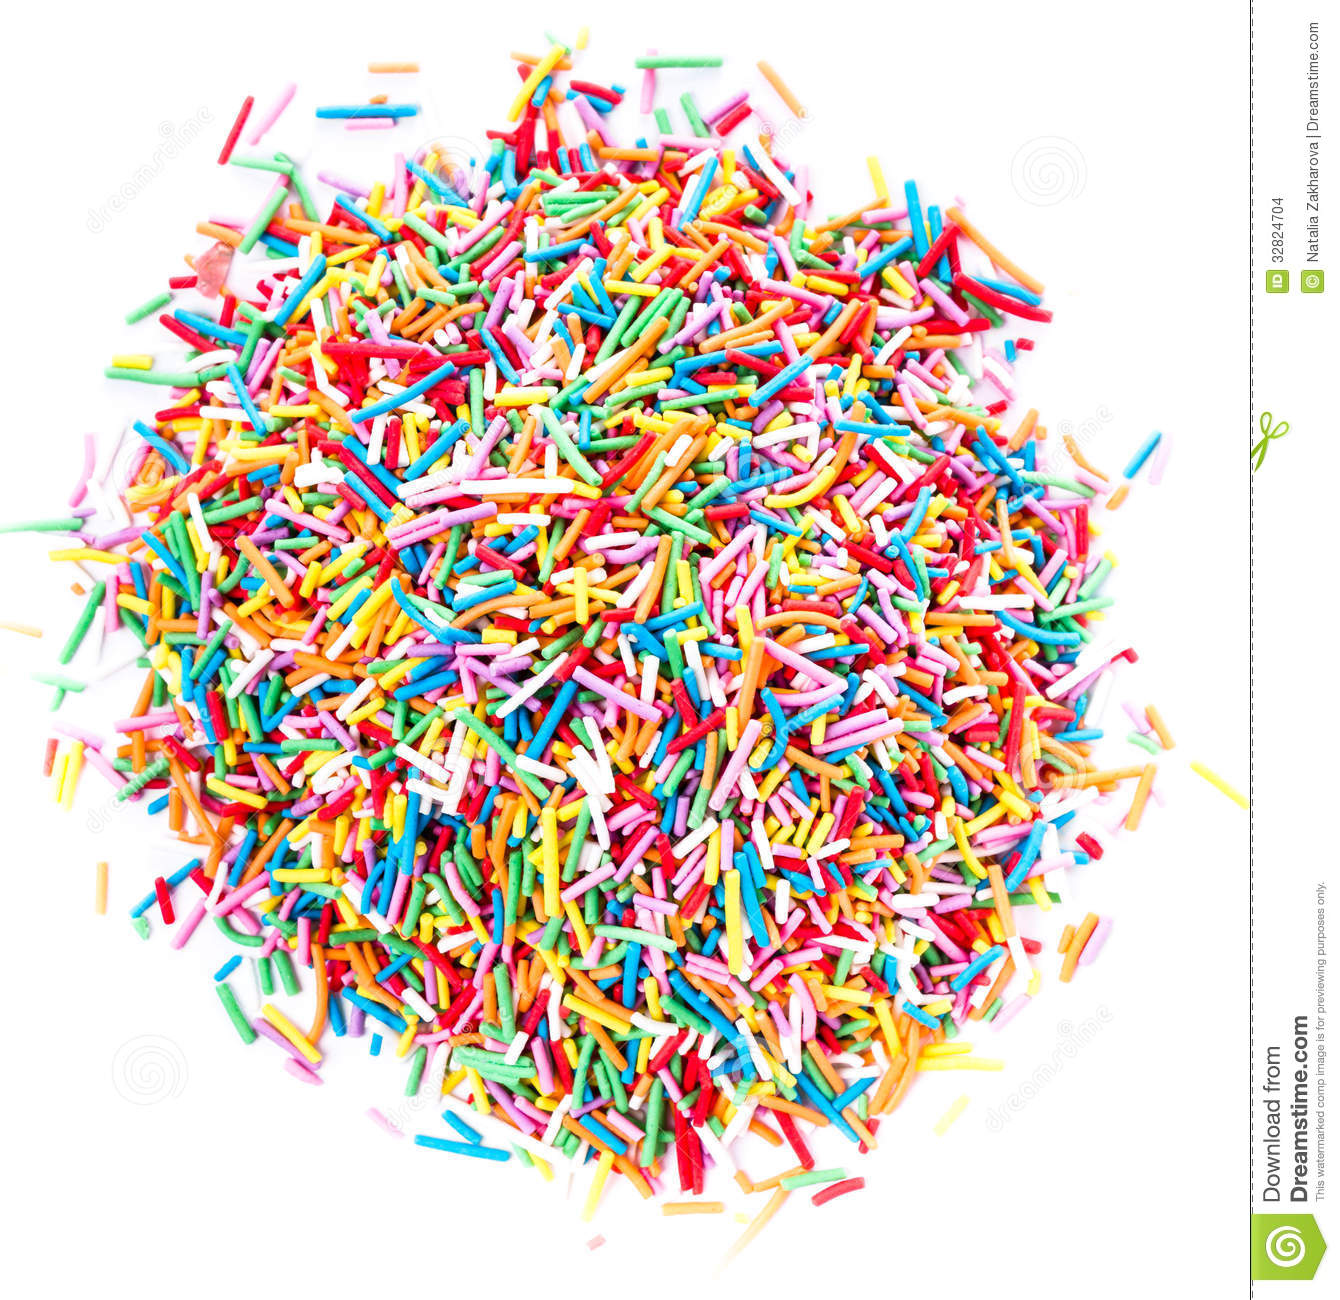 Sprinkles Clipart Colorful Sugar Candy Sprinkles #VQfzqE.